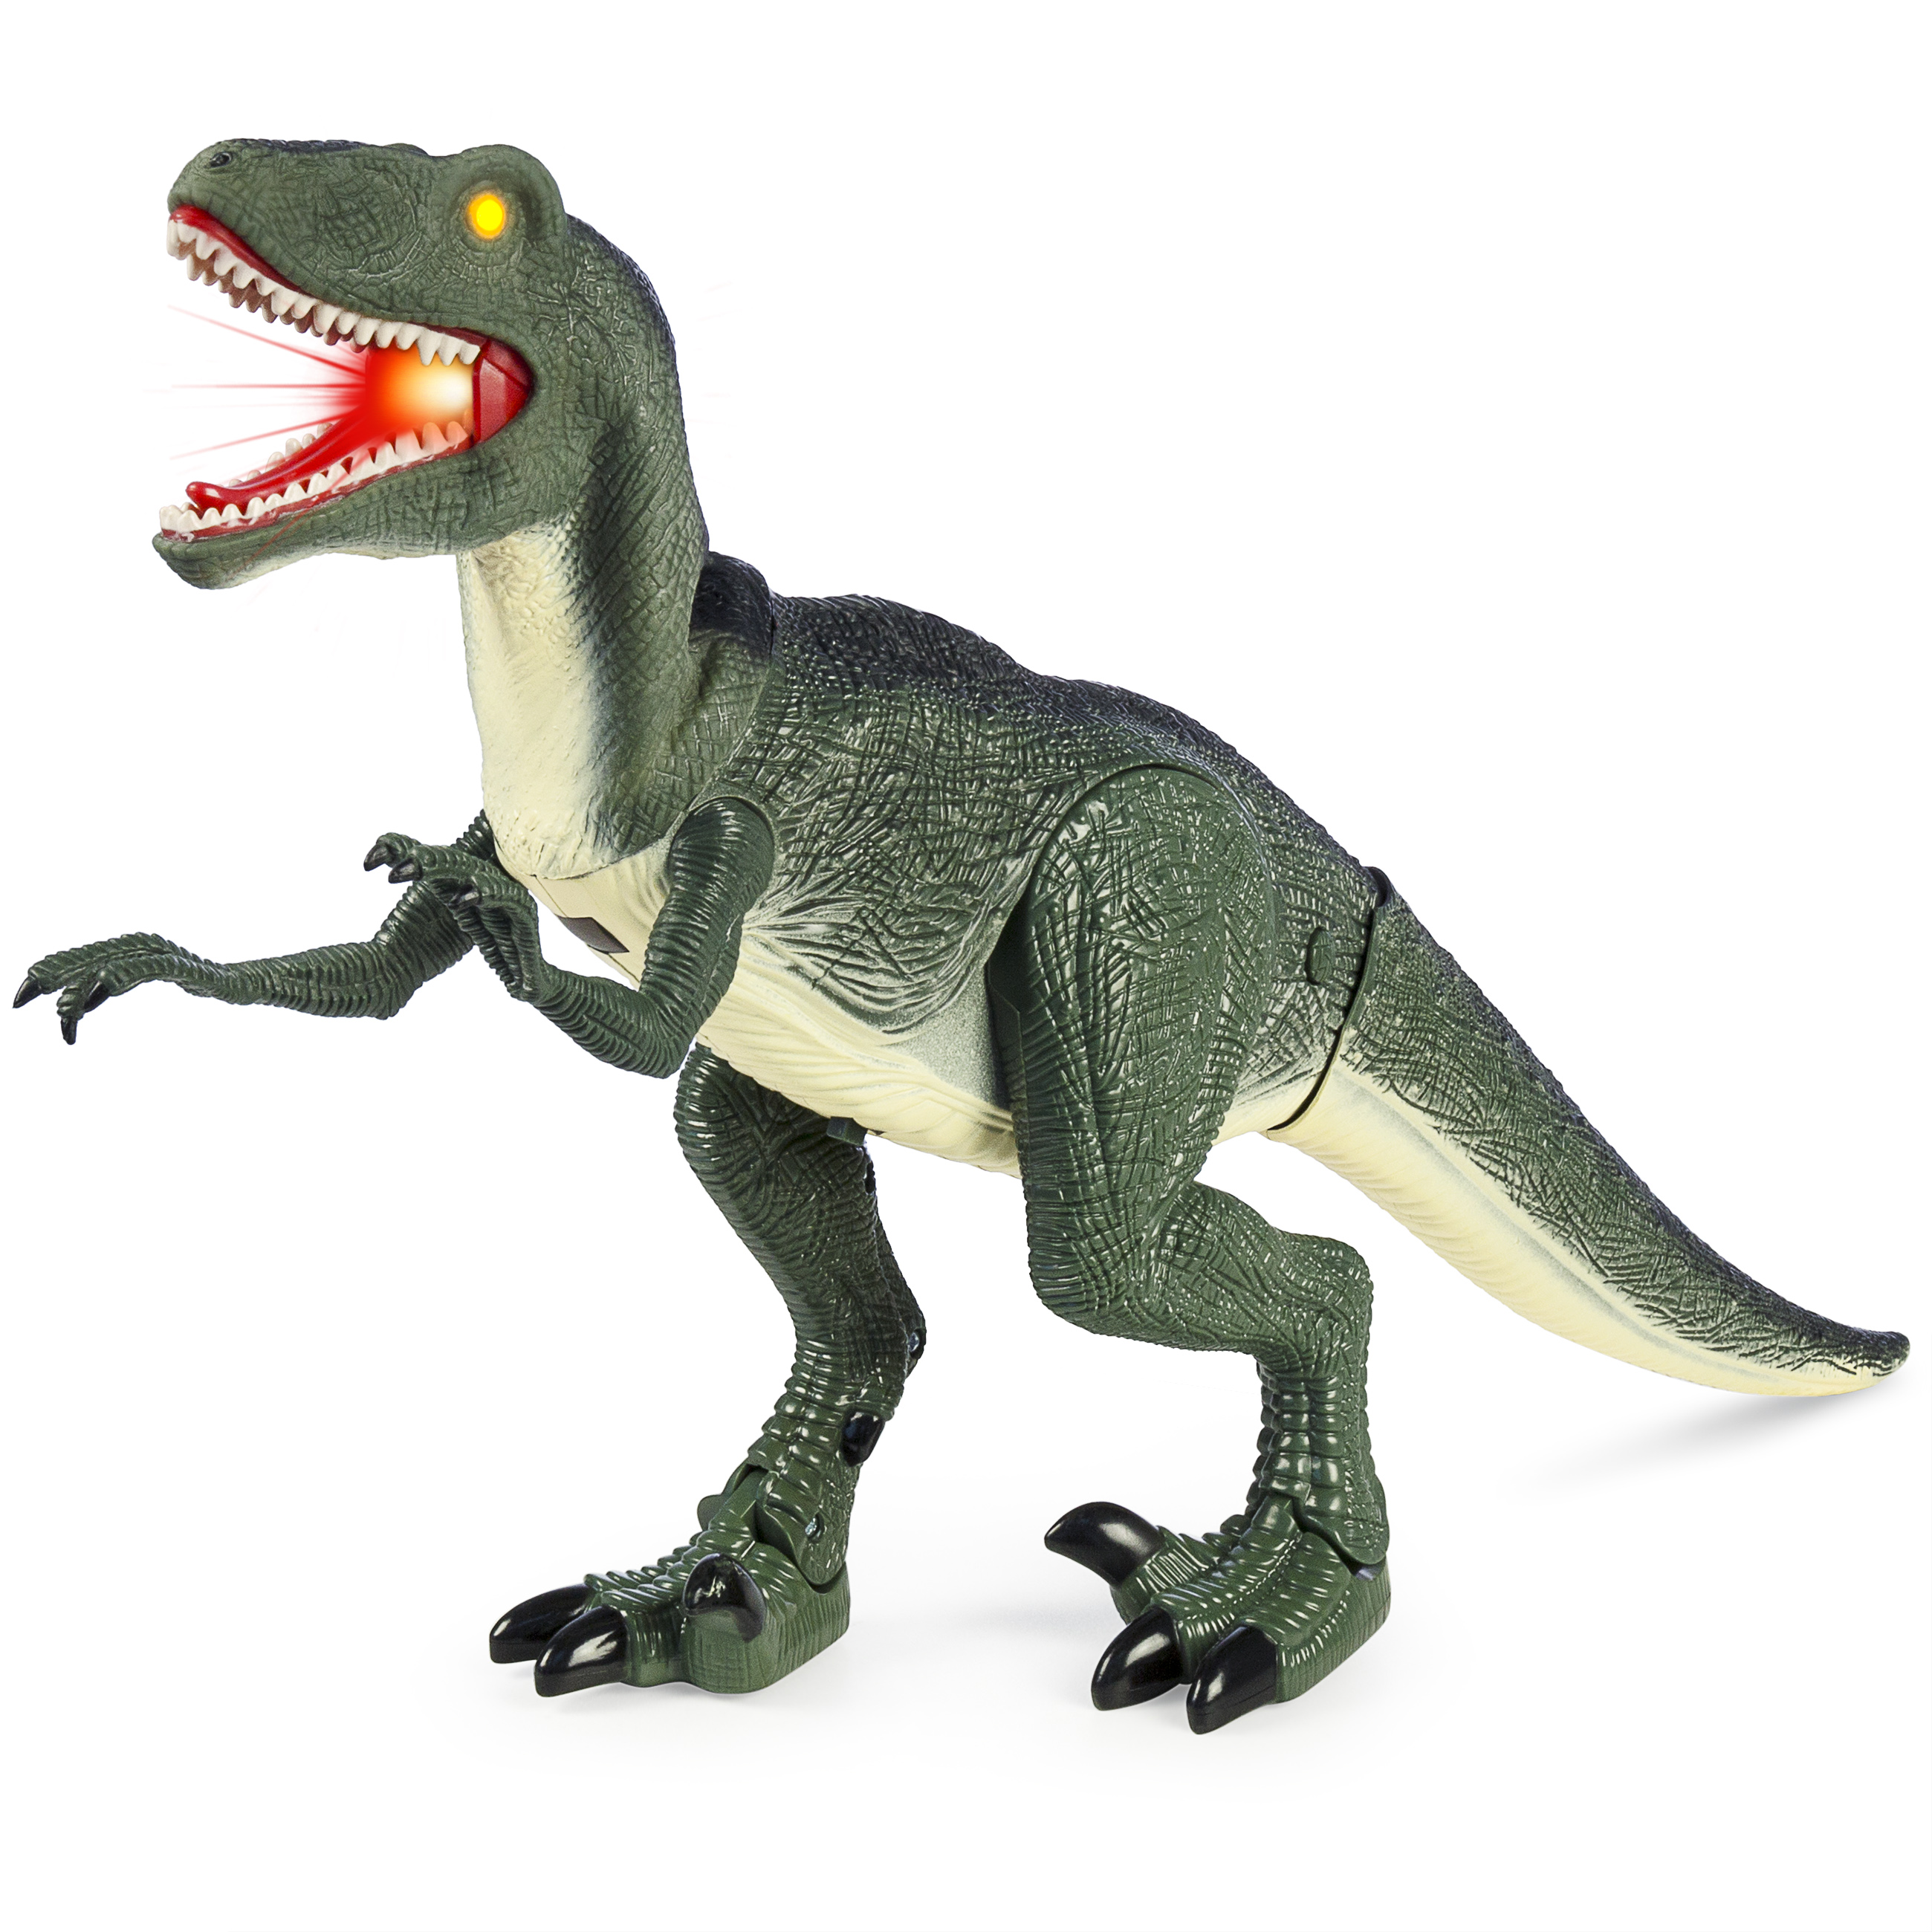 Best Choice Products Velociraptor 21in Large Walking Toy Dinosaur w/ Real Sound and Lights